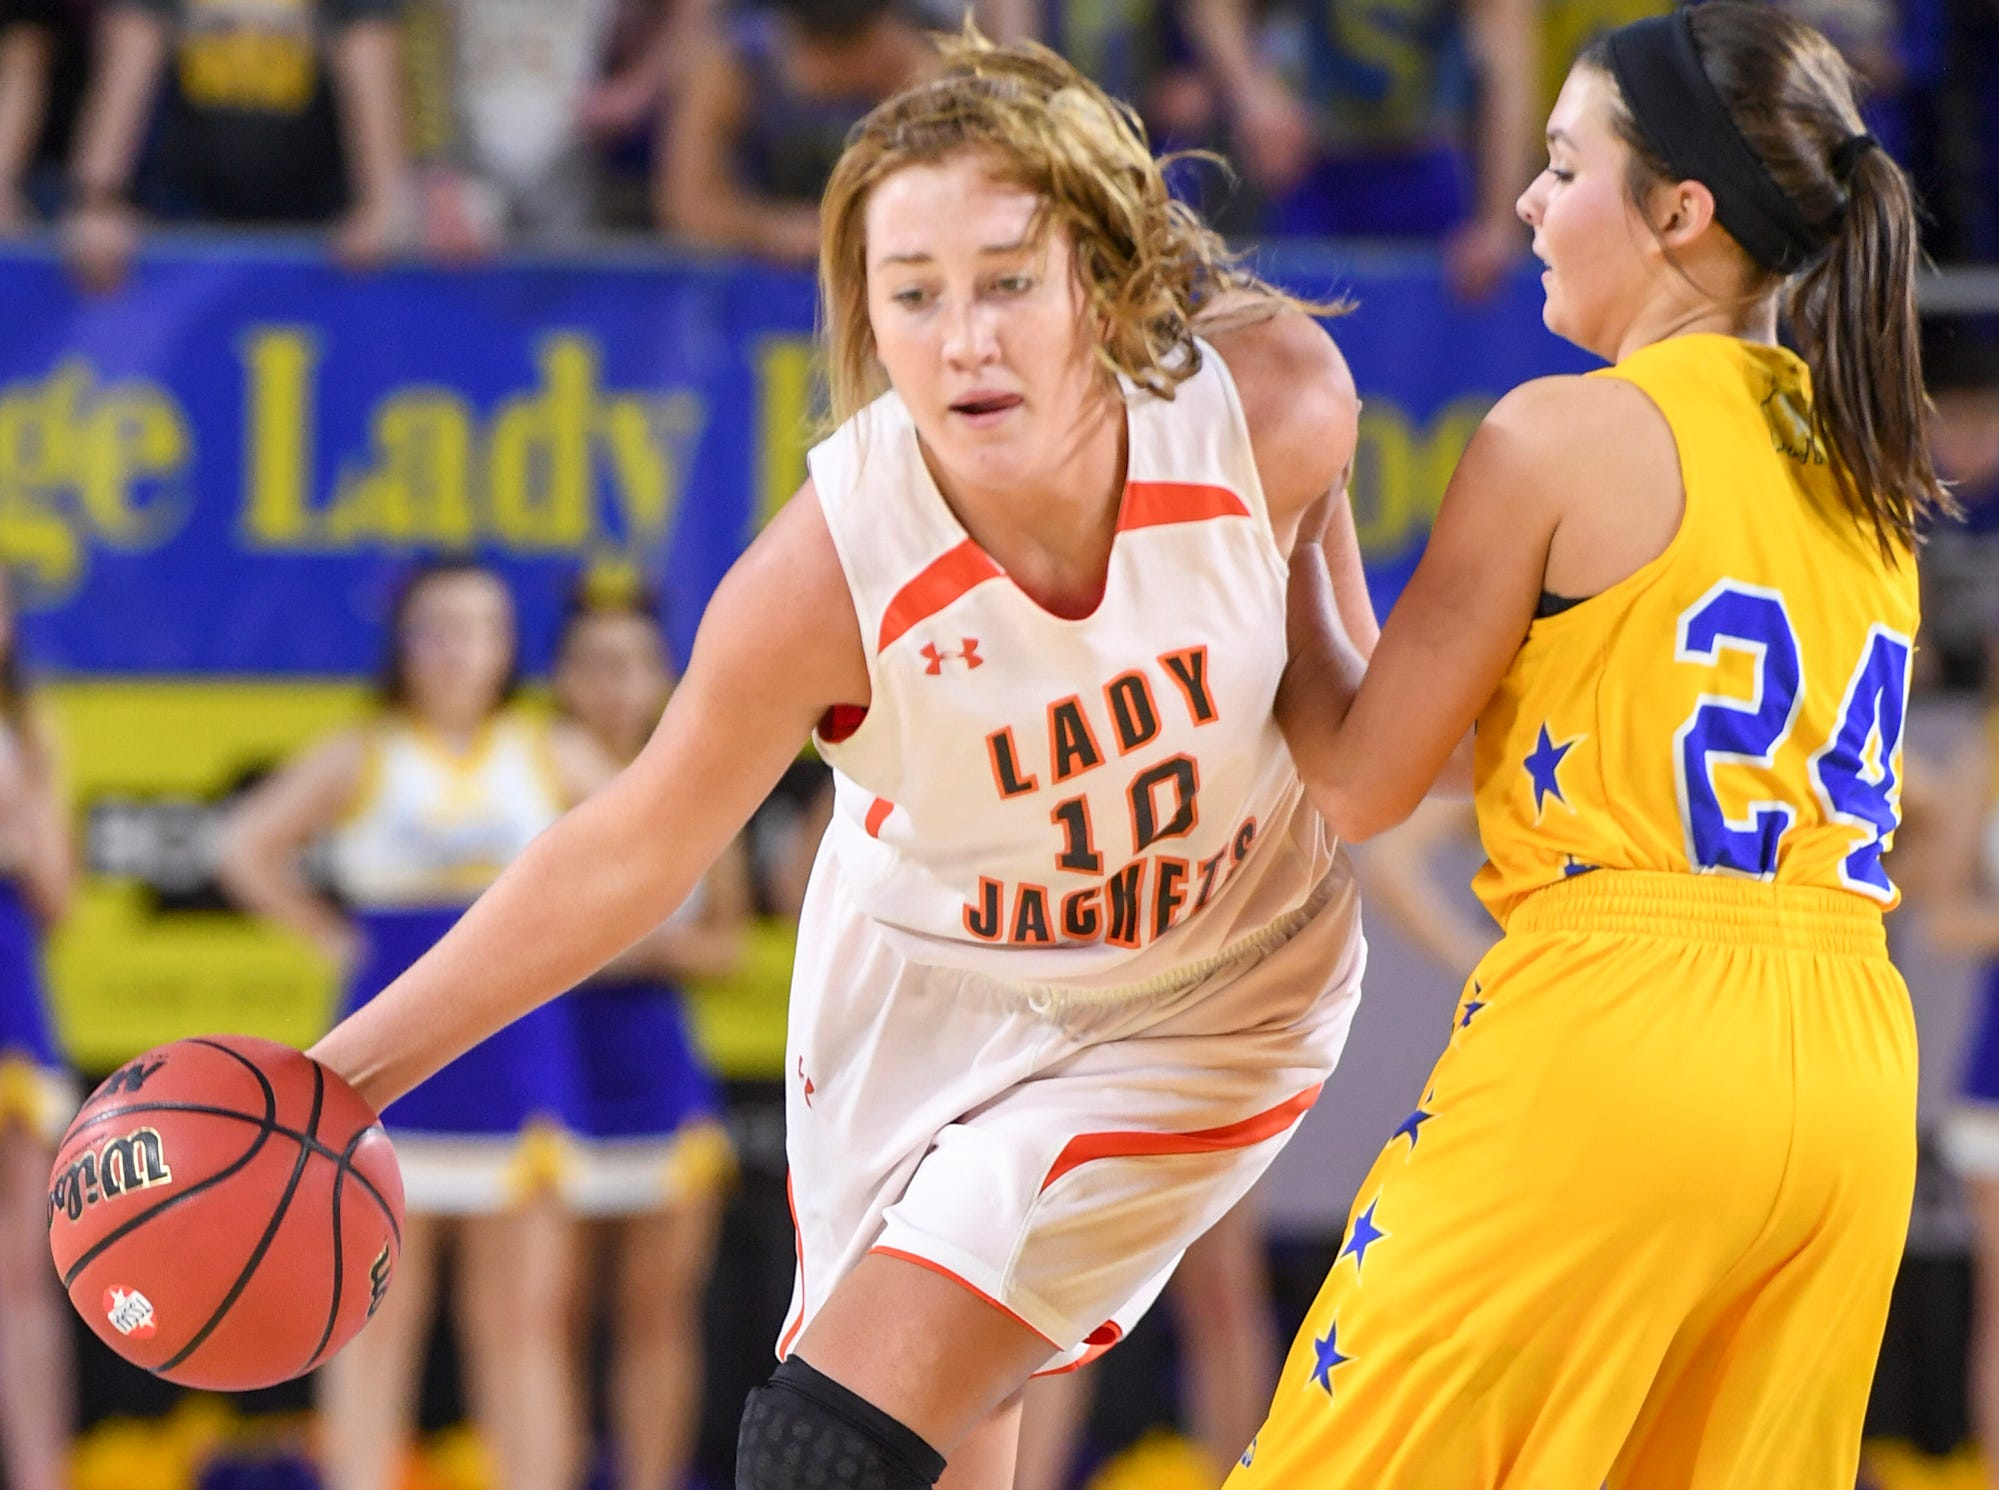 Greenfield's Tess Darby (10) dribbles past Clarkrange's Kaylie Monday (24) during their Class A quarterfinal game, Thursday, March 7, 2019, in Murfreesboro. Greenfield Lady Jackets defeated Clarkrange 64-45.